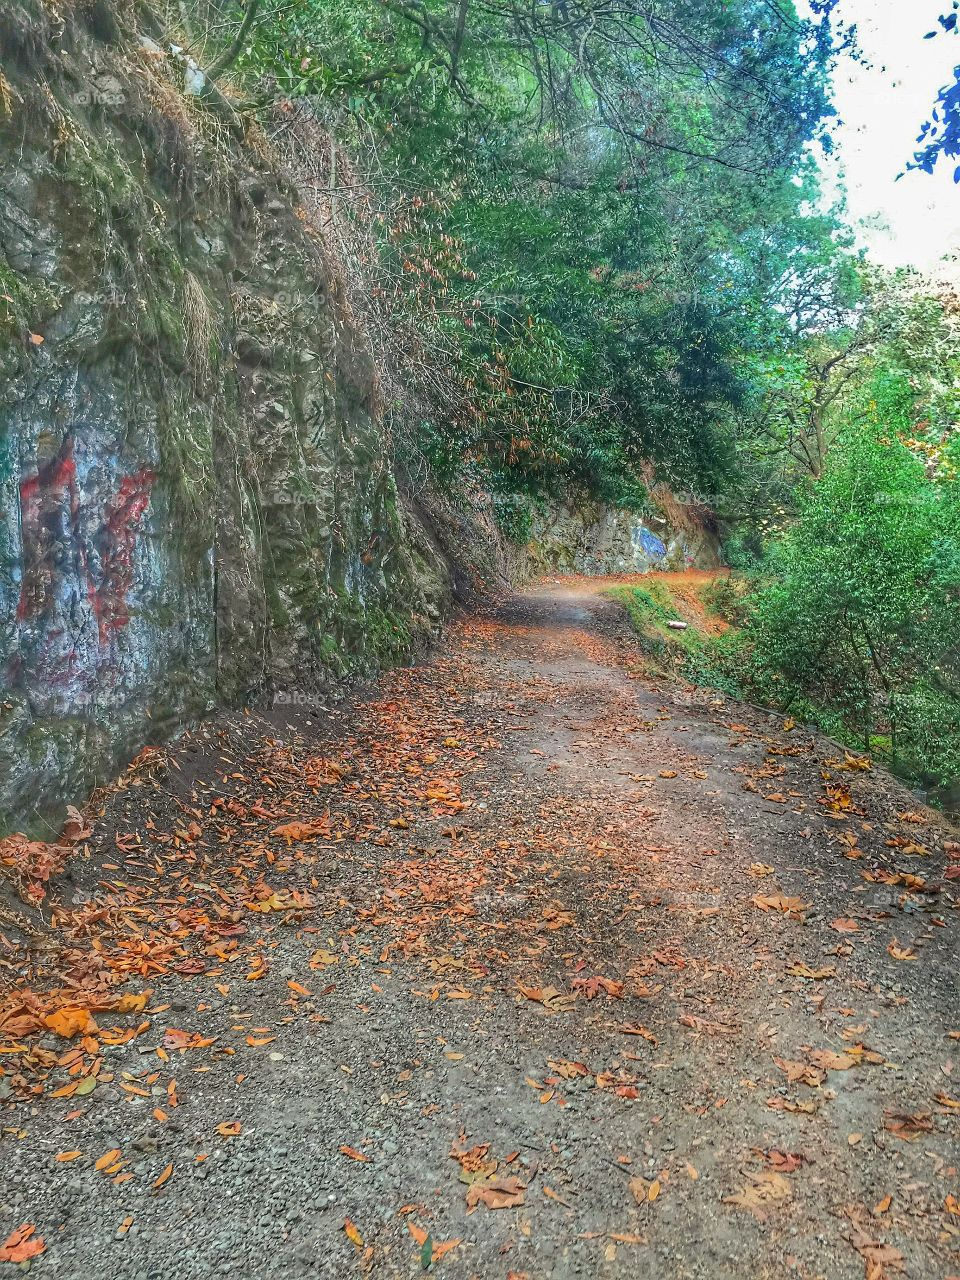 Scenic view of footpath in forest during autumn